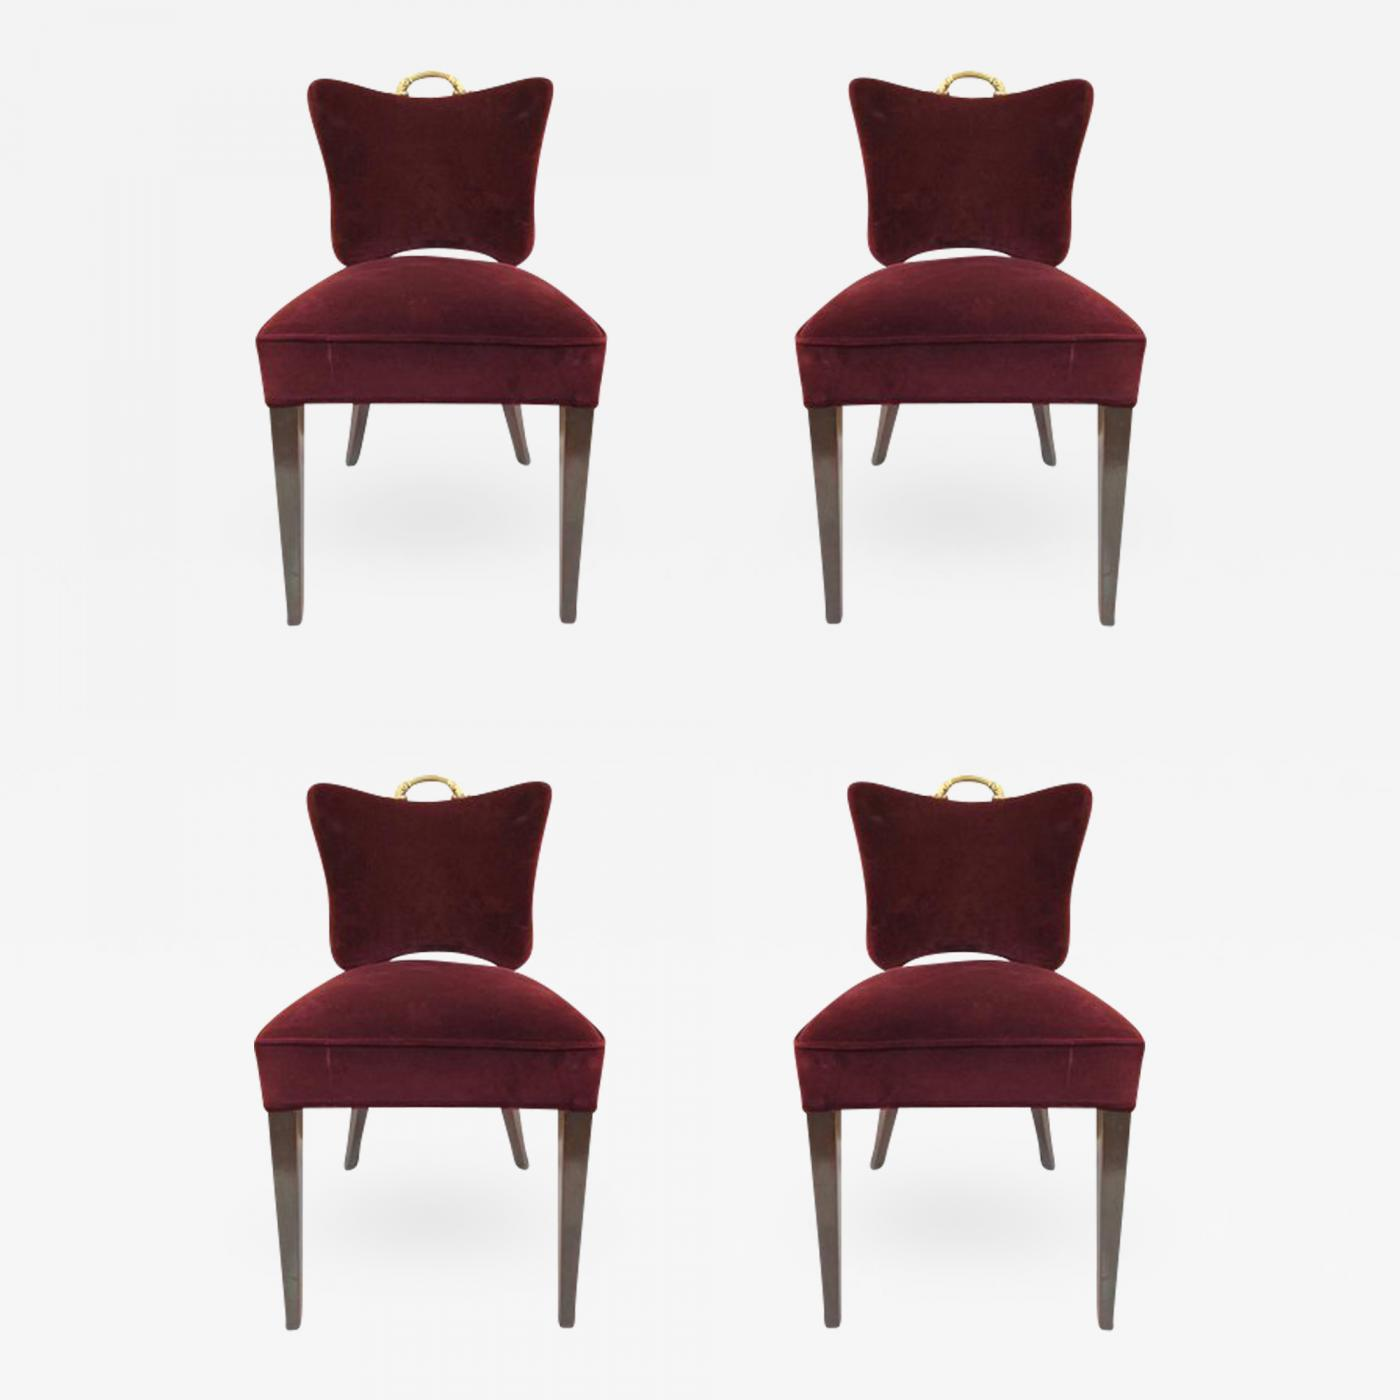 Art Deco Dining Chairs Four Art Deco Dining Chairs In Velvet Upholstery